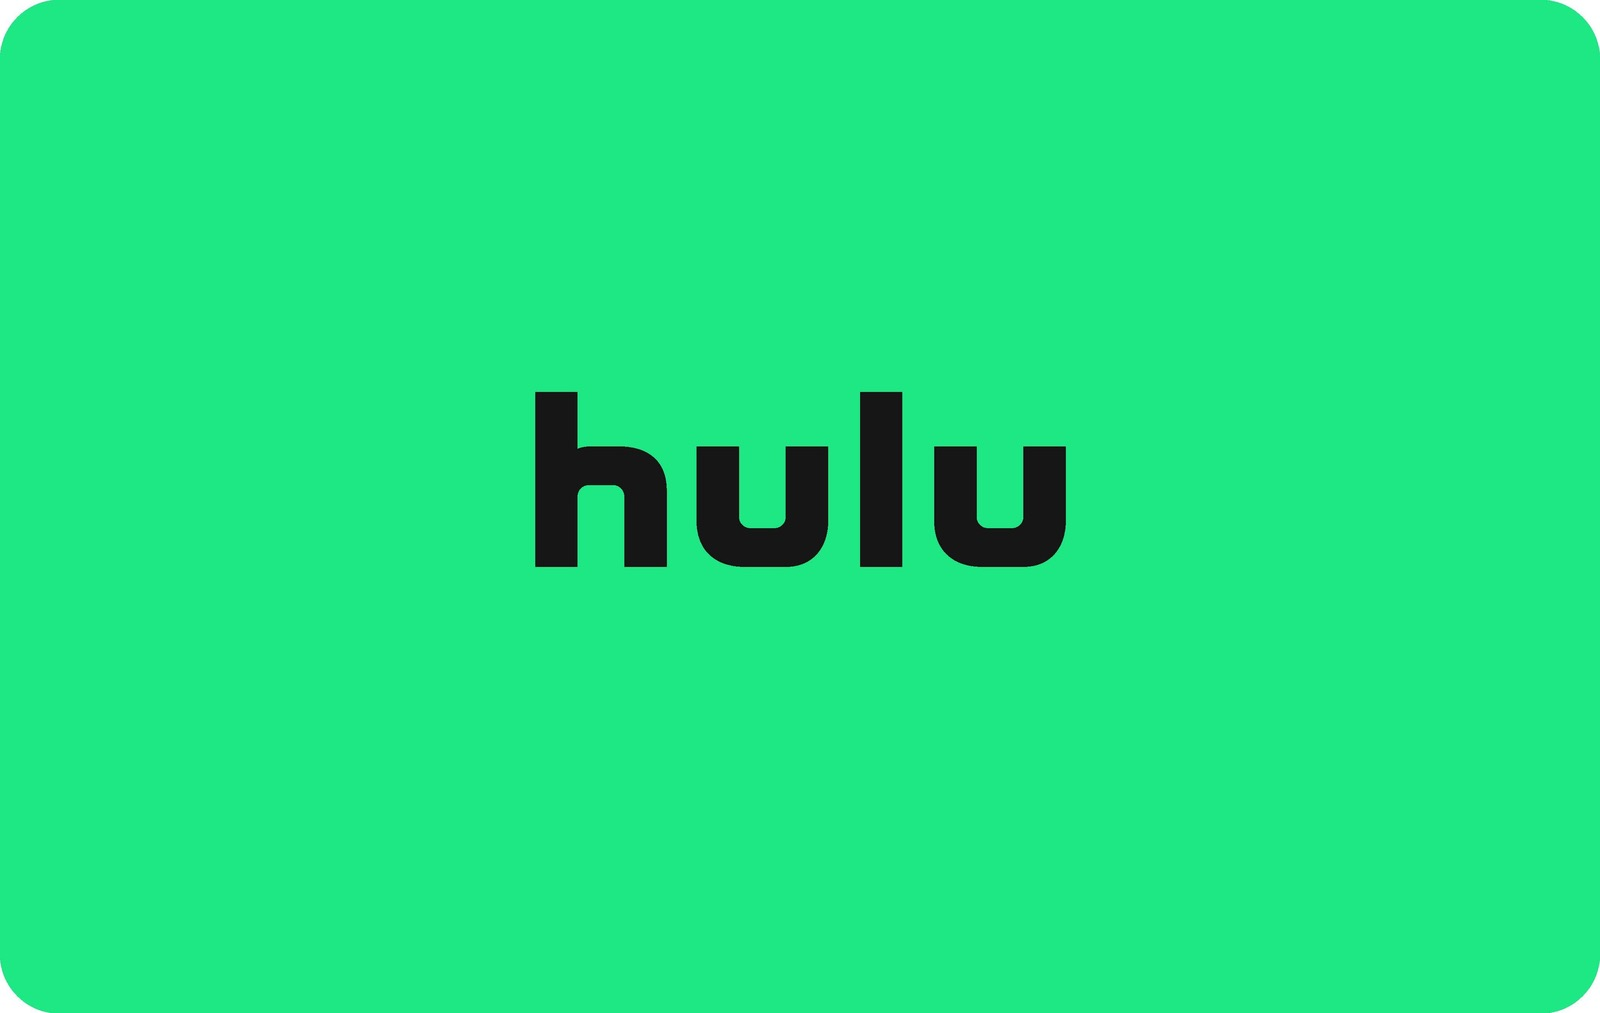 Hulu Gift Card - $25 or $50 - Email delivery 1